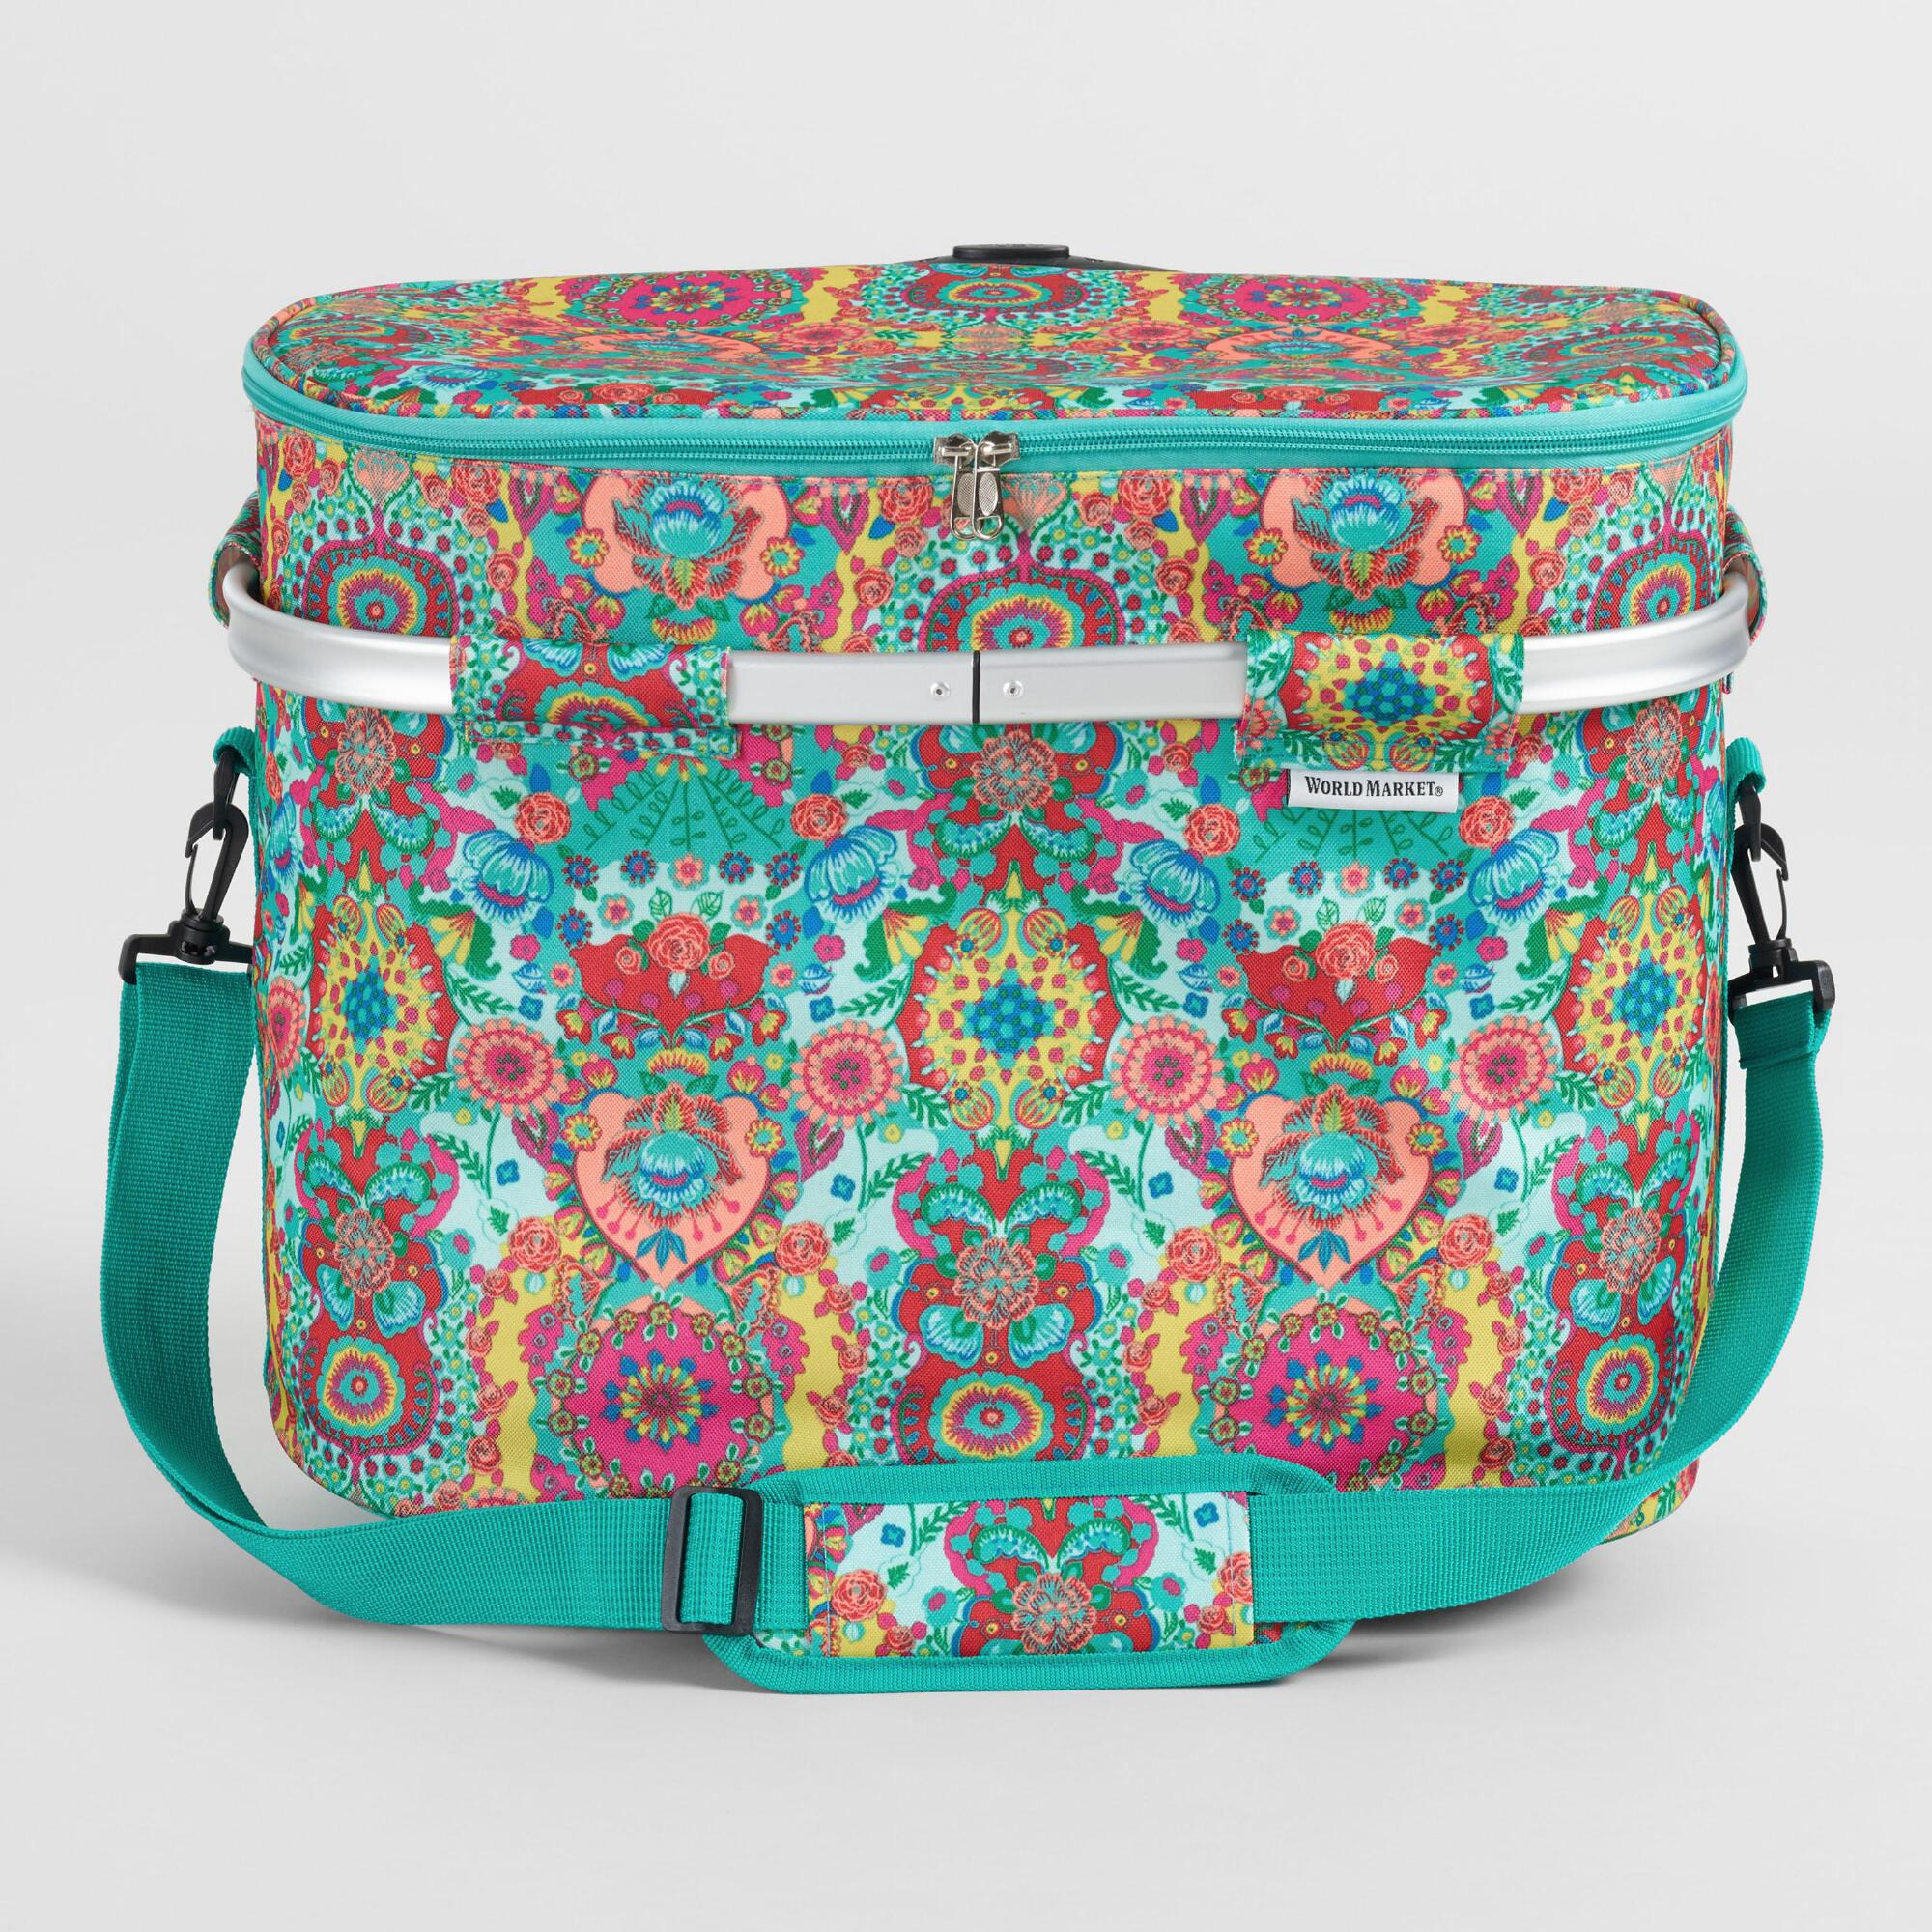 Bettina Floral Rolling Trolley Insulated Tote Bag by World Market